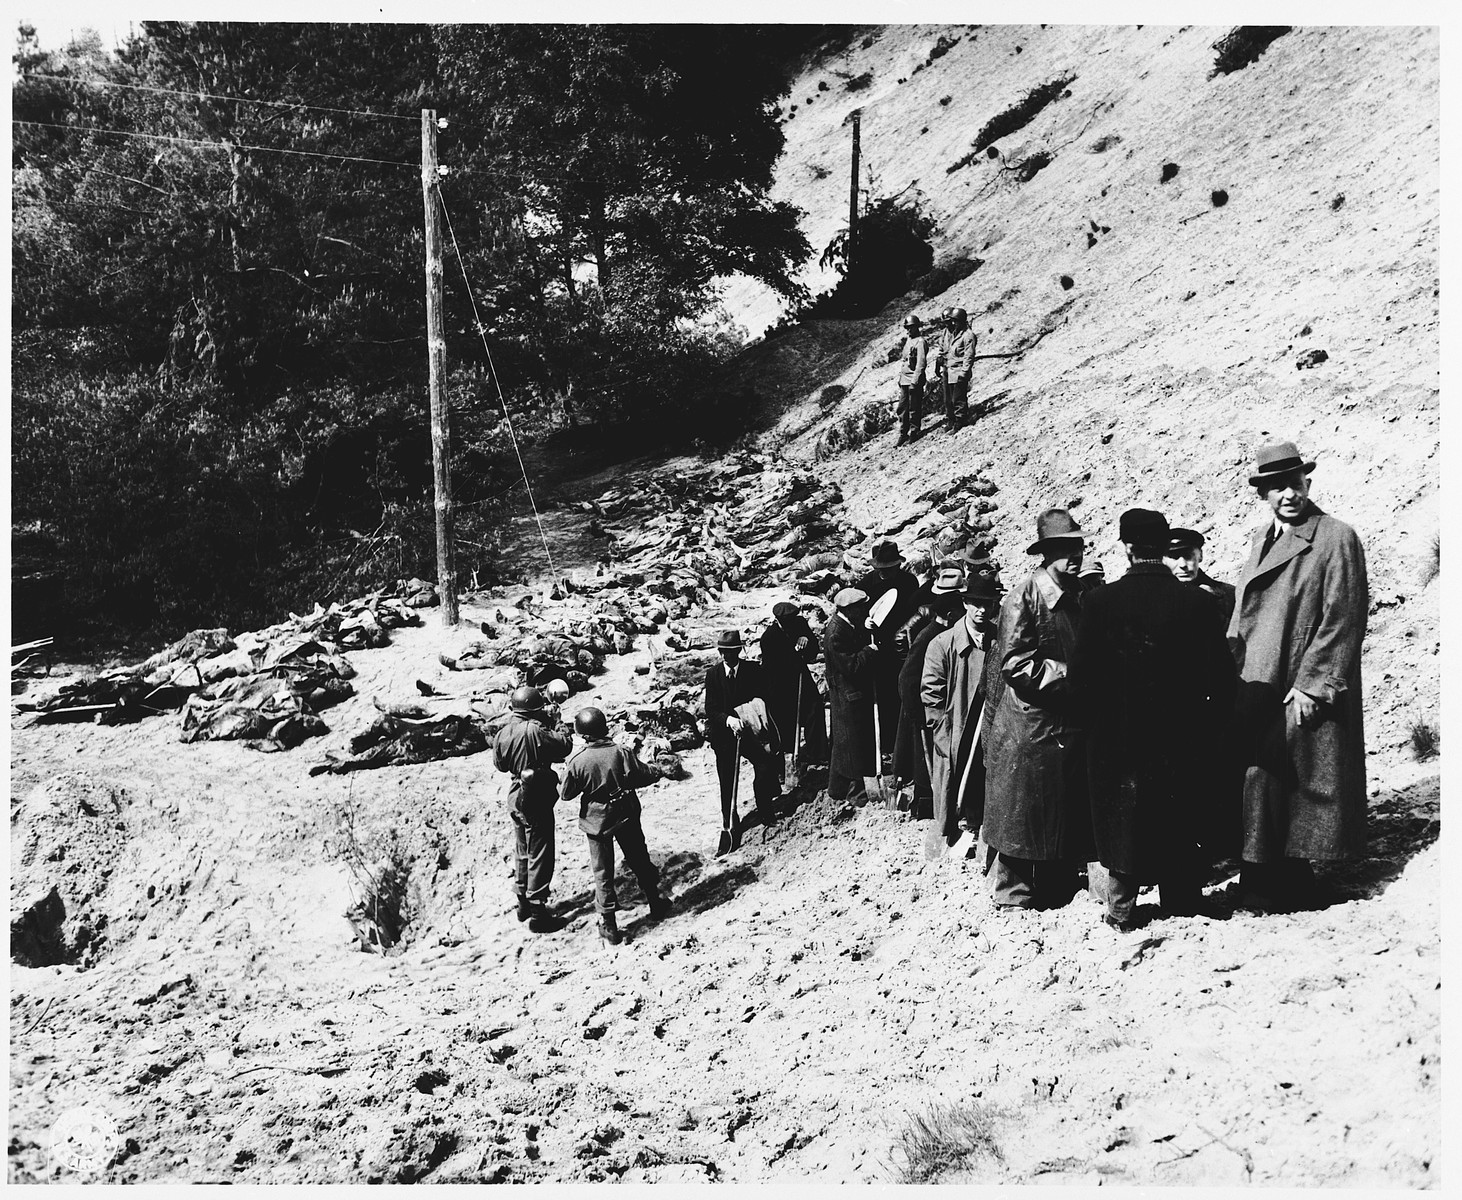 Under the supervision of American soldiers, German civilians view the bodies of 71 political prisoners from a mass grave on Wenzelnberg near Solingen-Ohligs.    The victims, most of whom were taken from Luettringhausen prison, were shot and buried by the Gestapo following orders to eliminate all Reich enemies just before the end of the war.